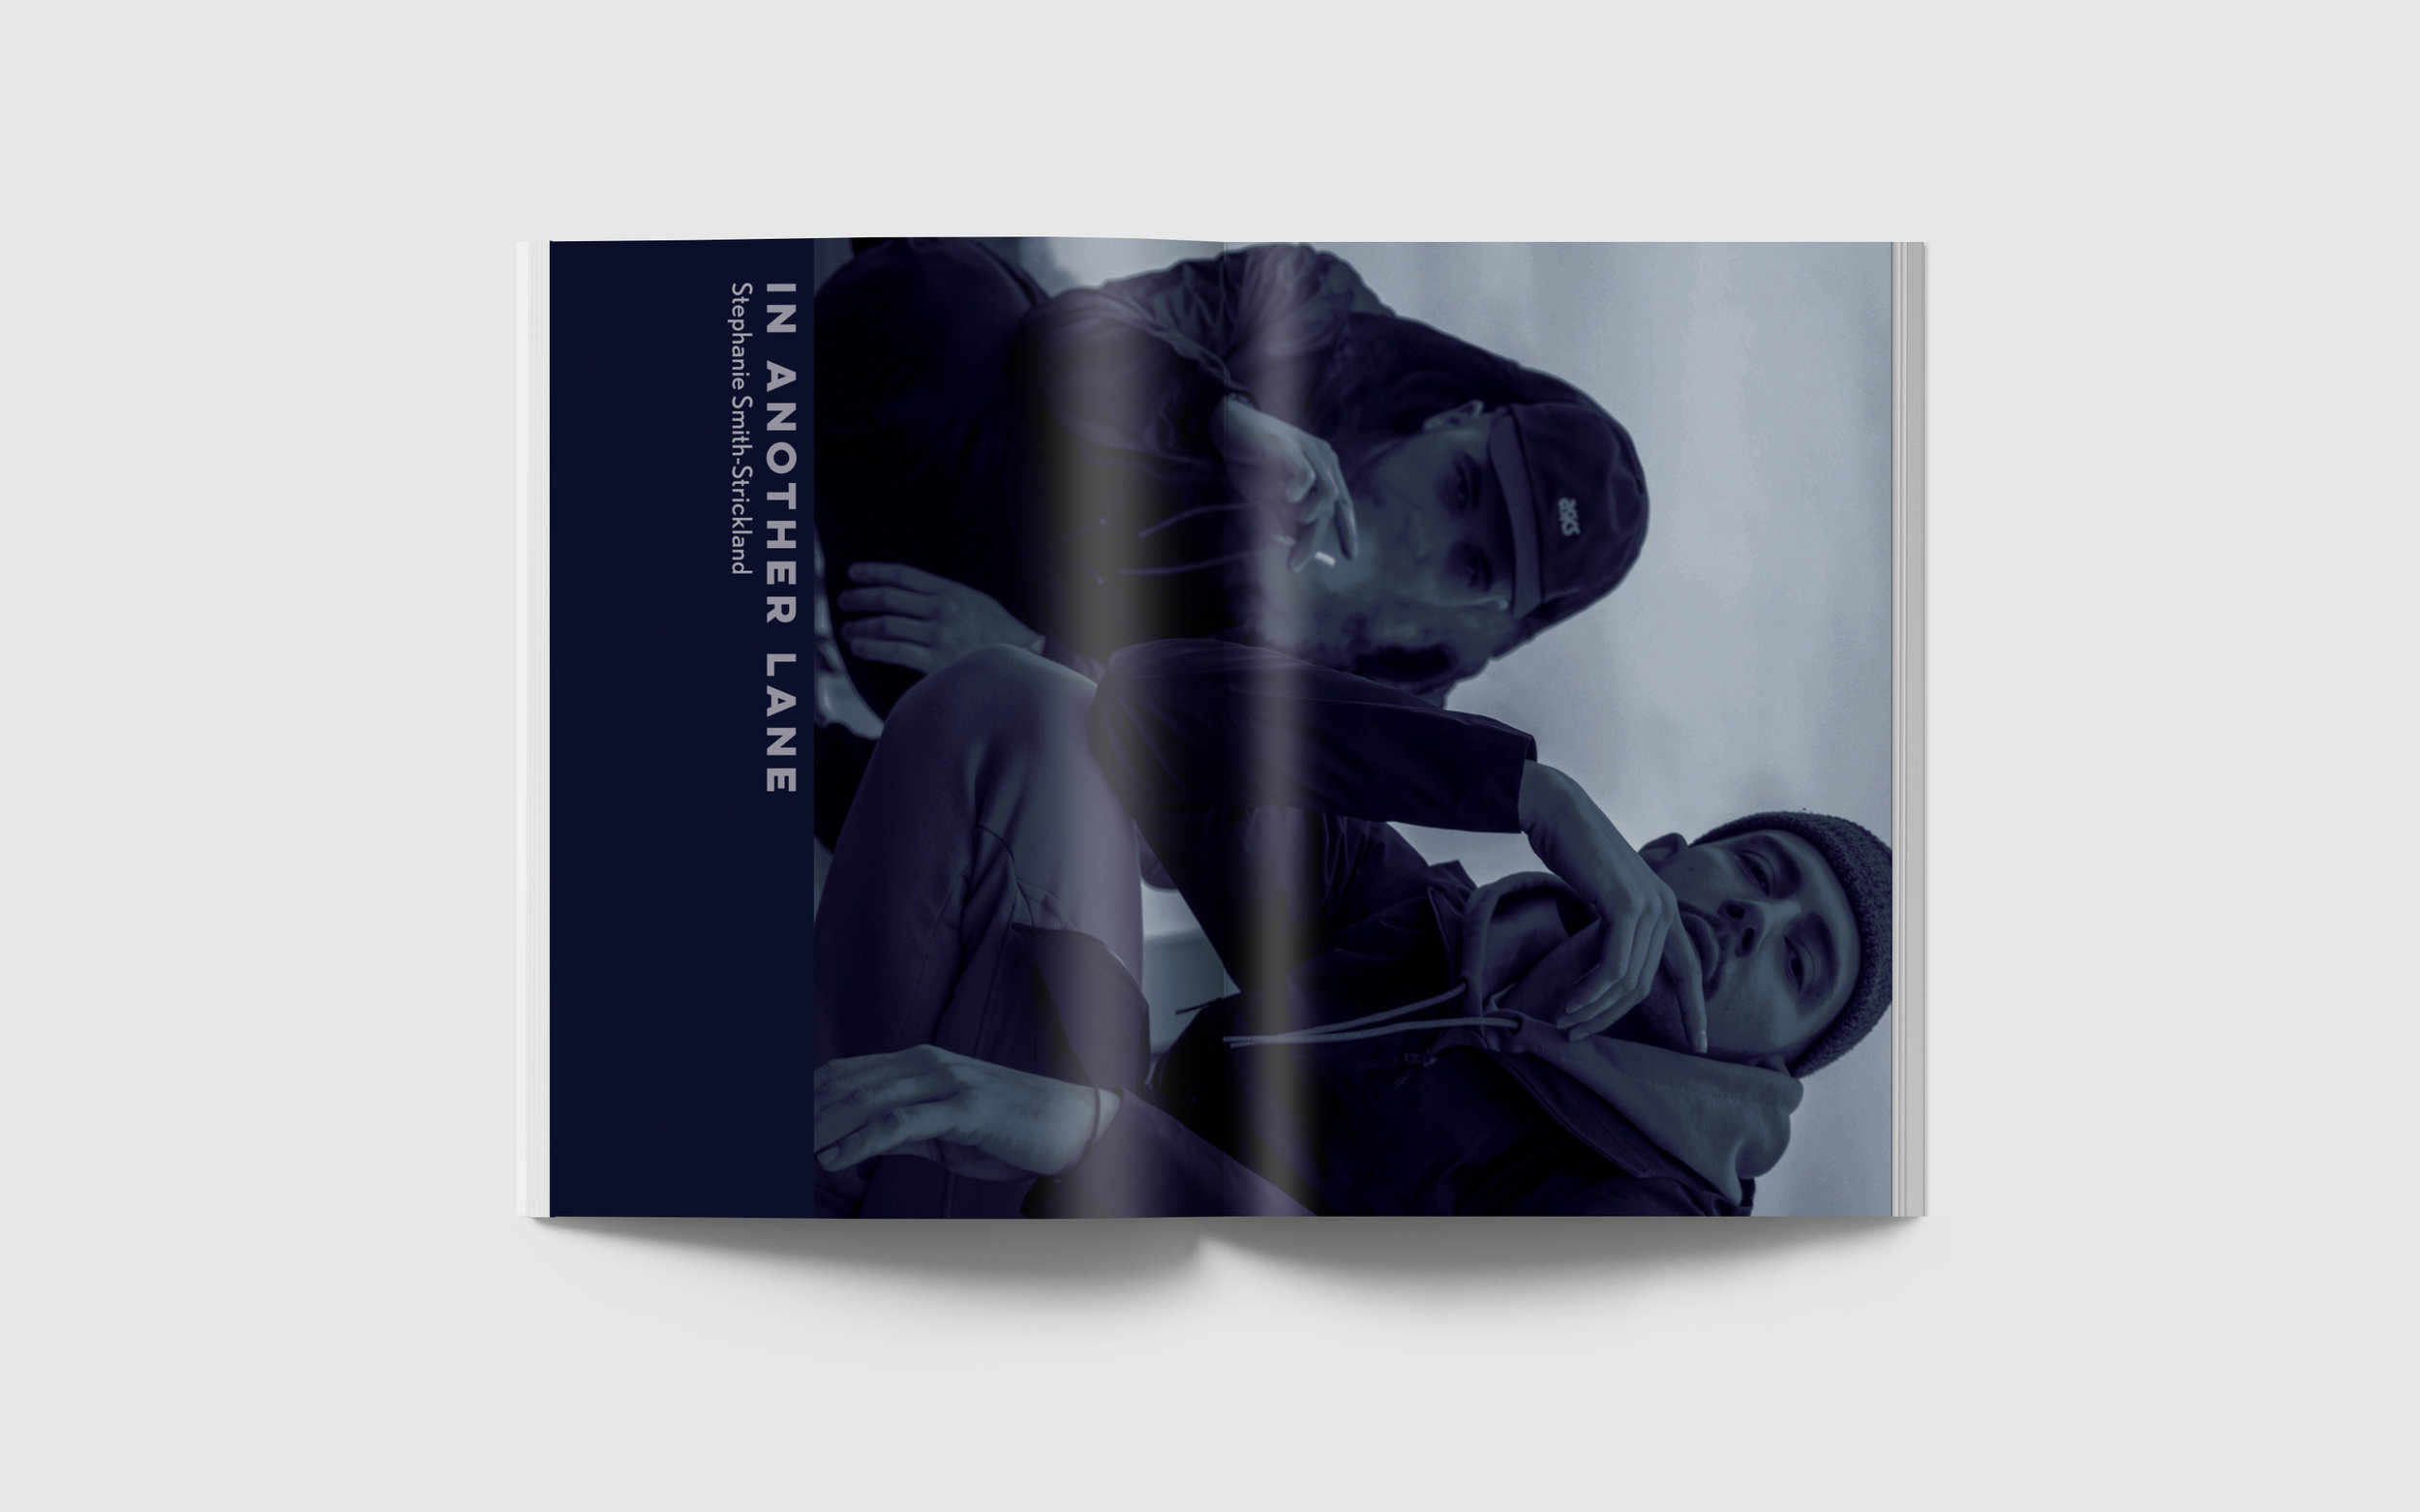 NEST Magazine redesign, designed in collaboration with  Greyson Kelly , featuring an article about Toronto based music duo Majid Jordan.